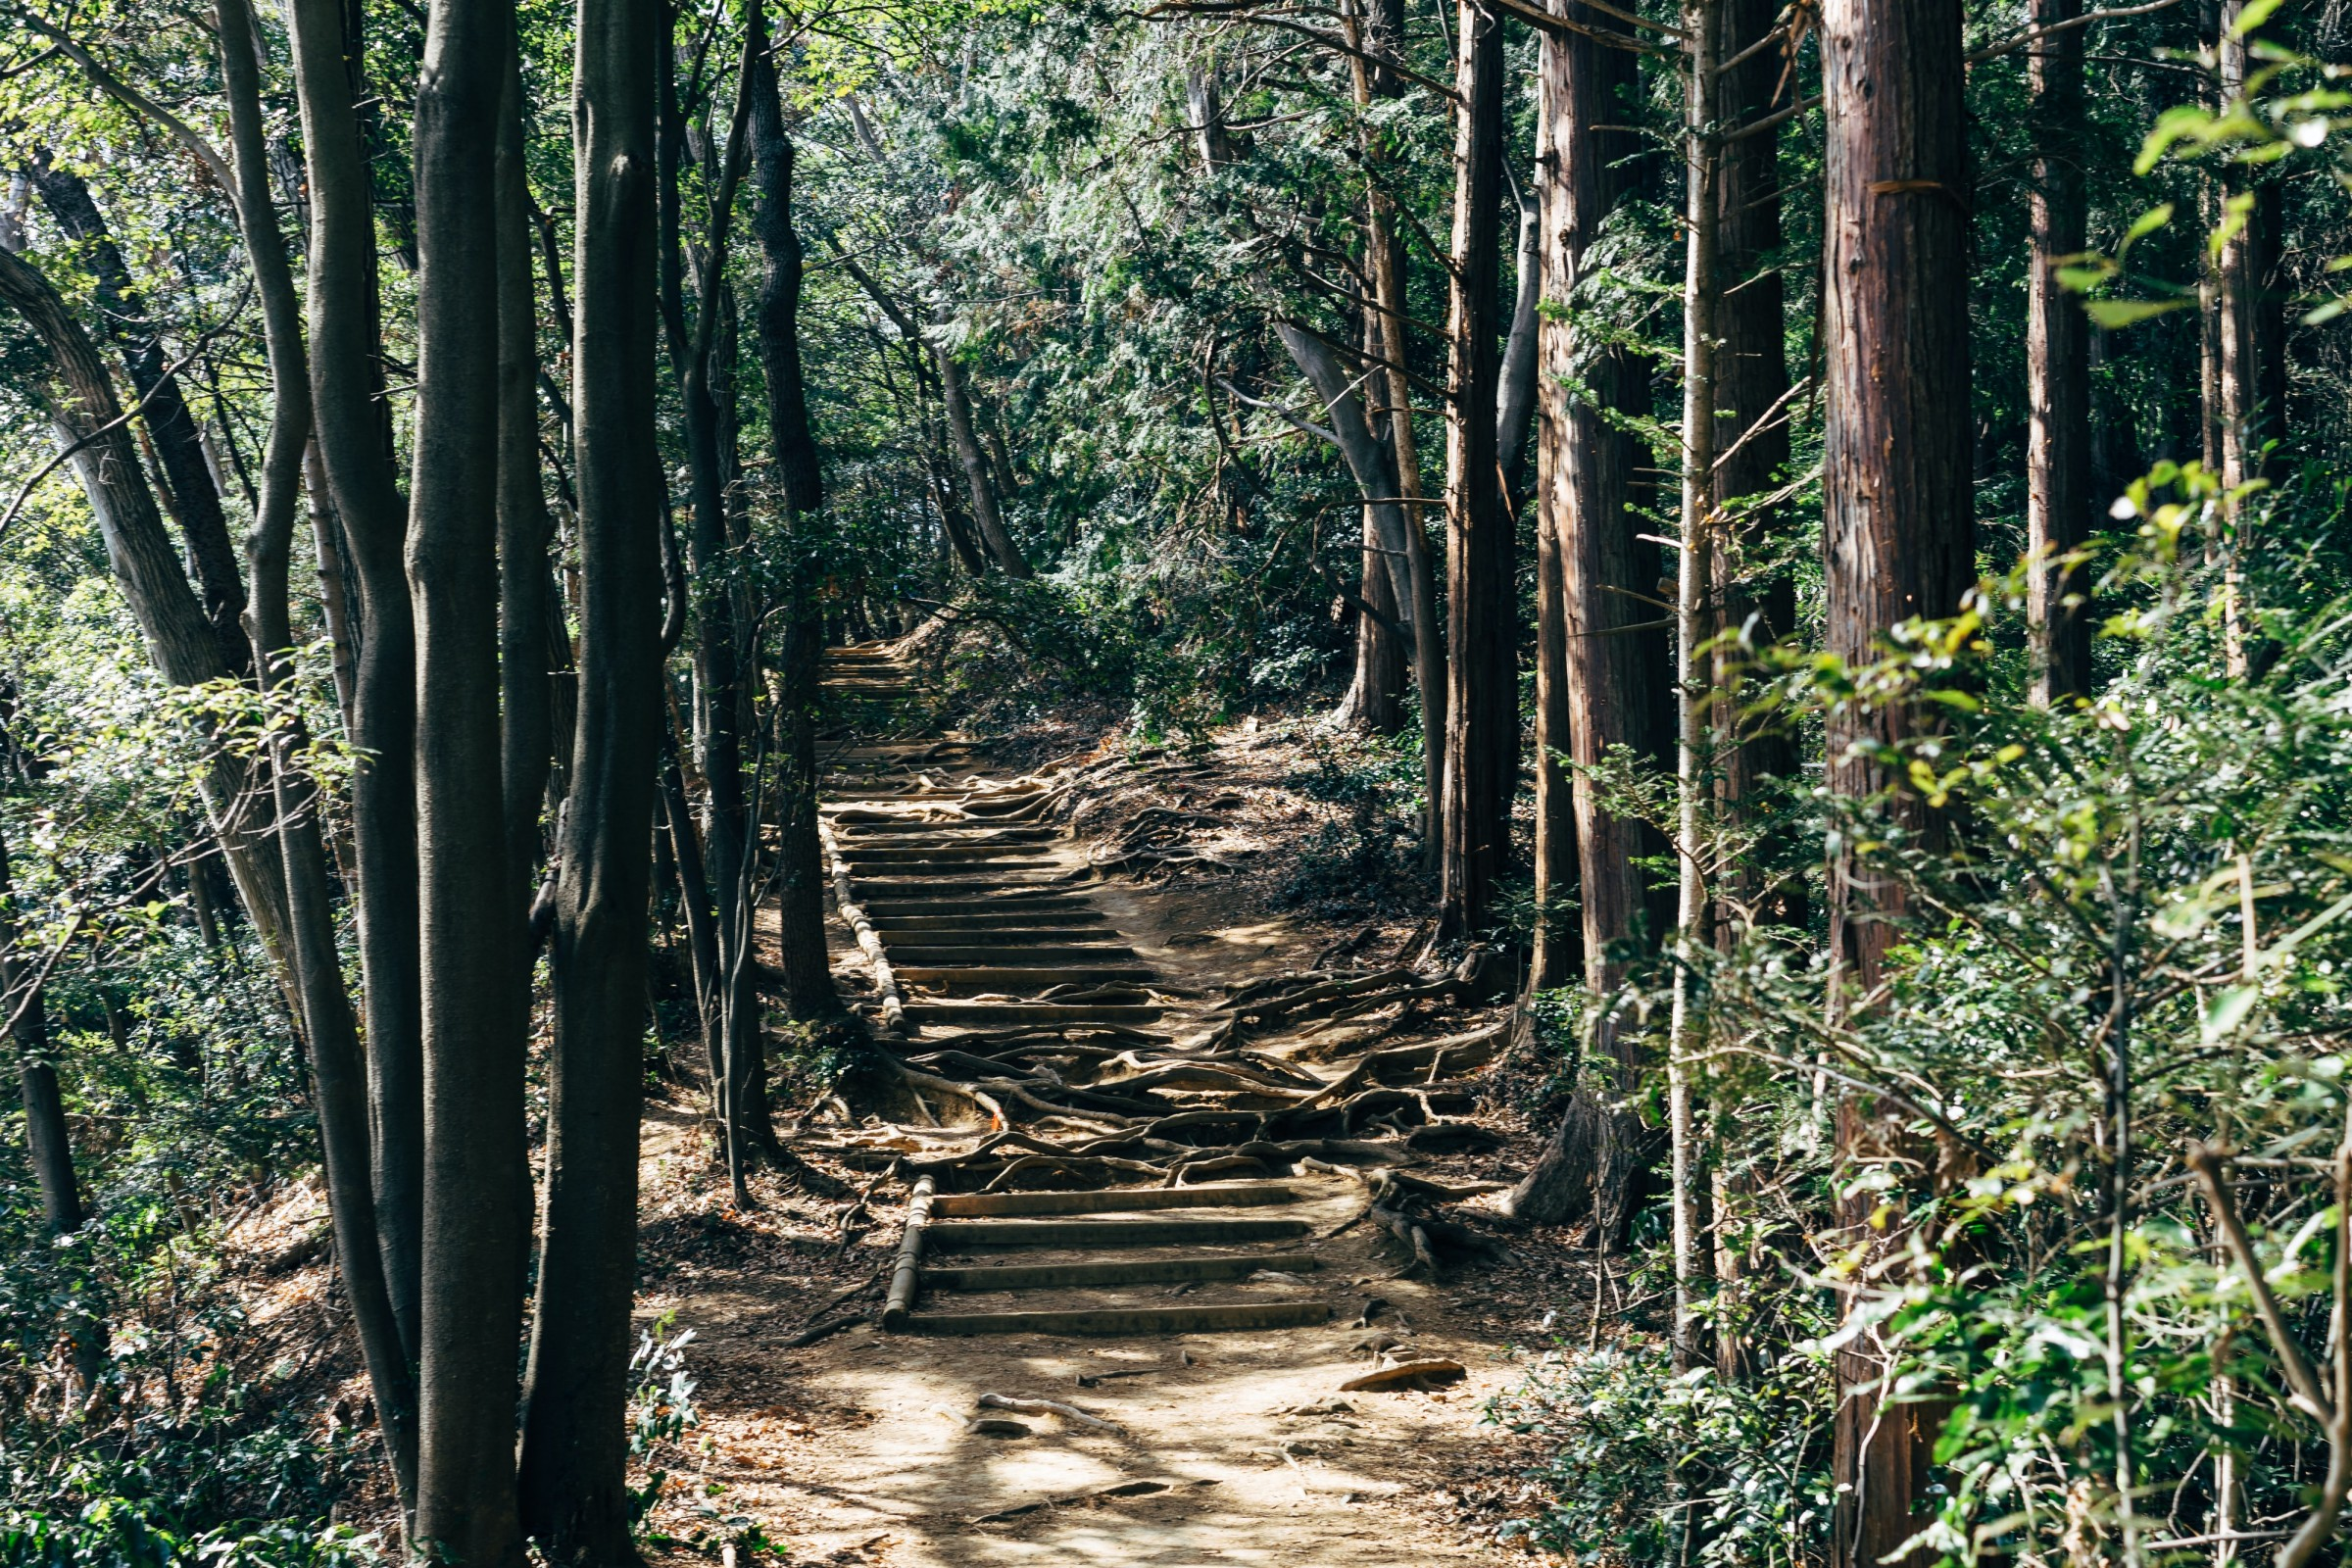 A forested walking route at Mount Takao